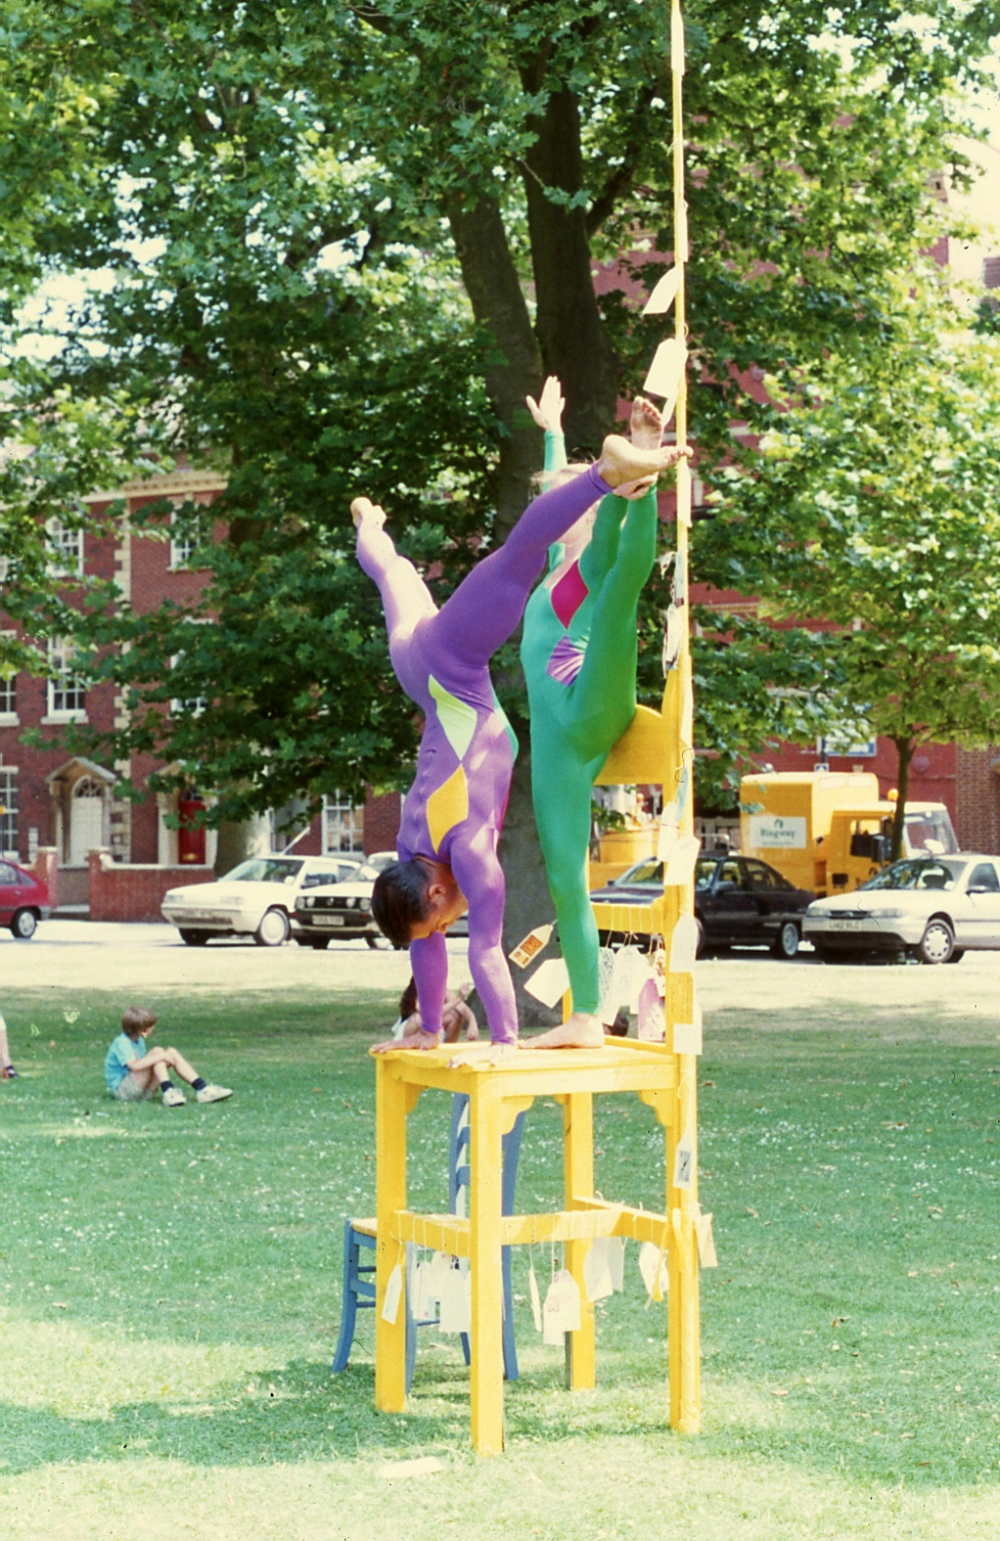 Large Yellow Chair With Acrobats